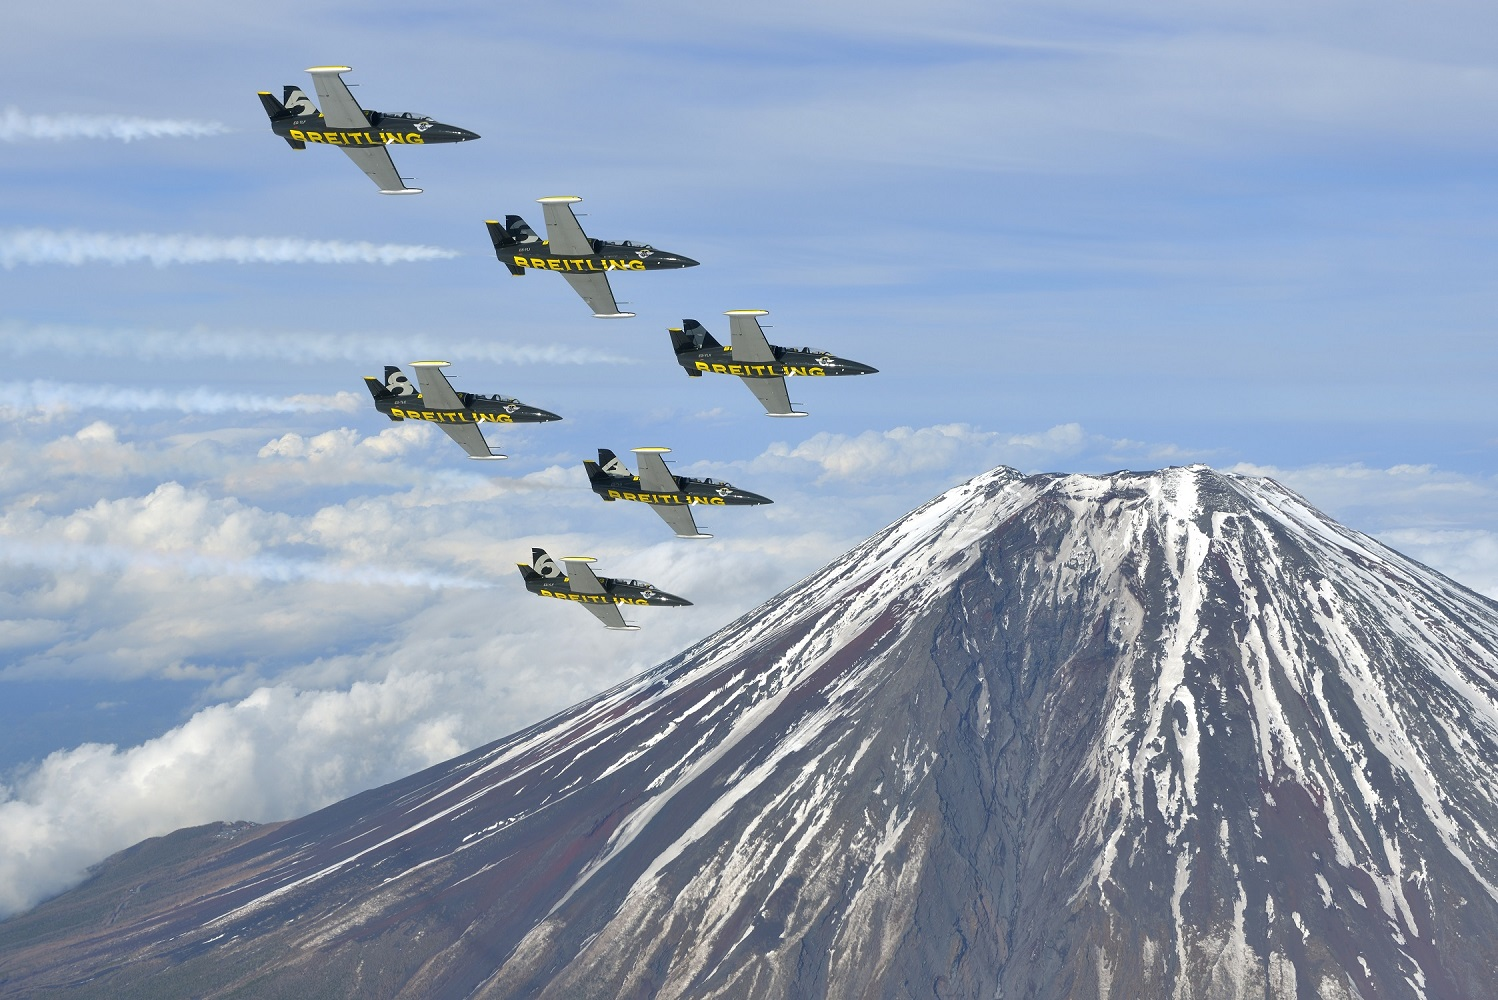 Breitling Jet Team Over Mt. Fuji ( Image Credit Tokunaga)